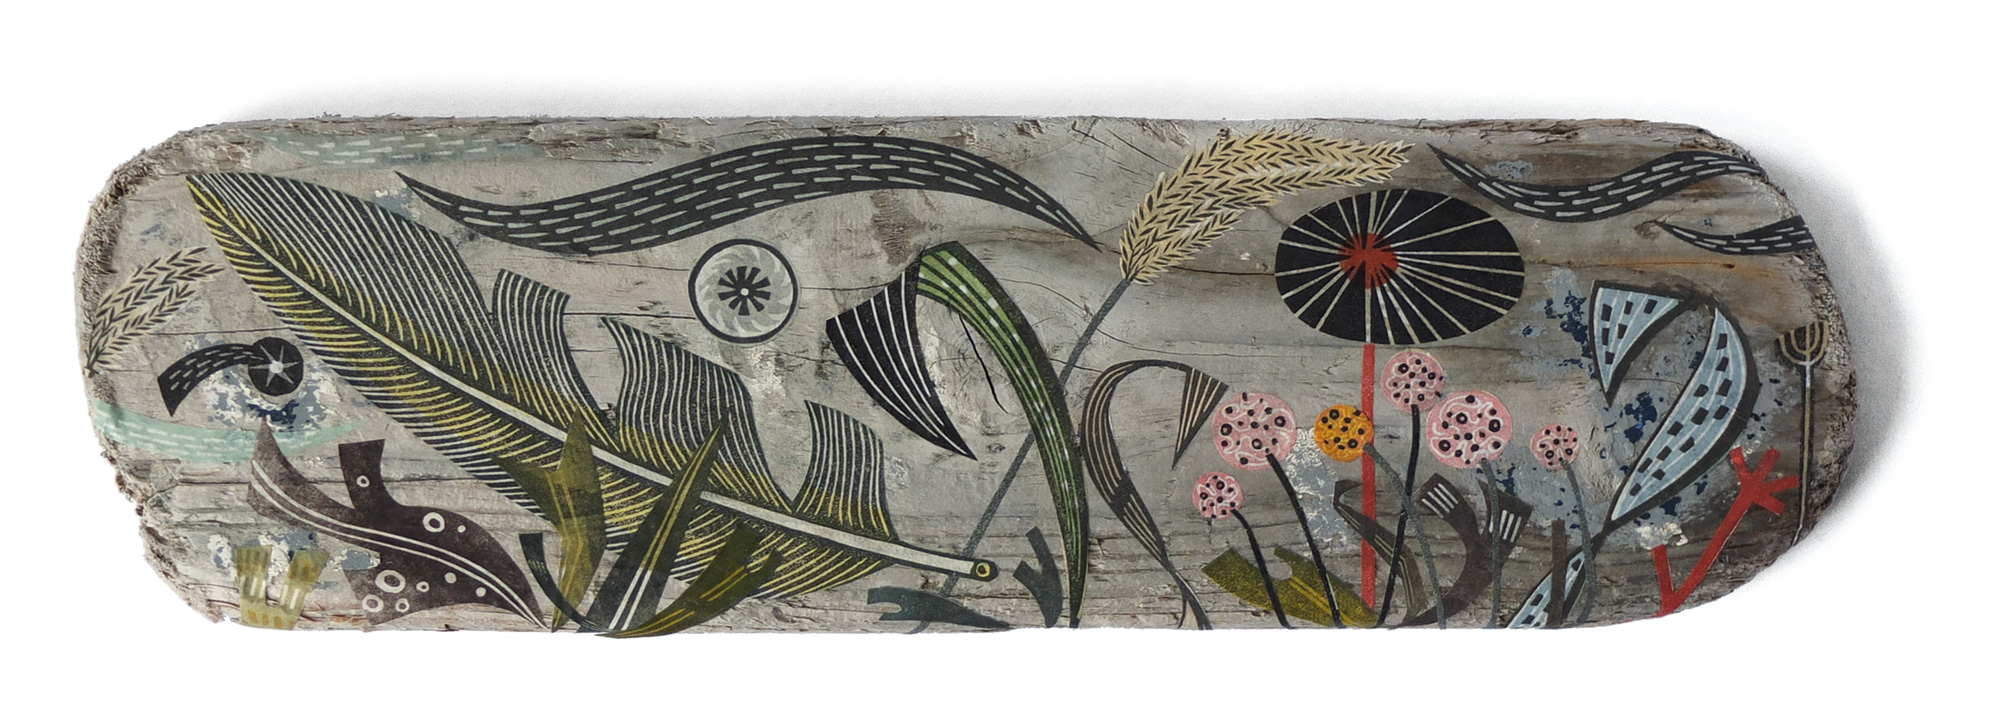 'Findhorn Feather and Thrift' mixed media collage